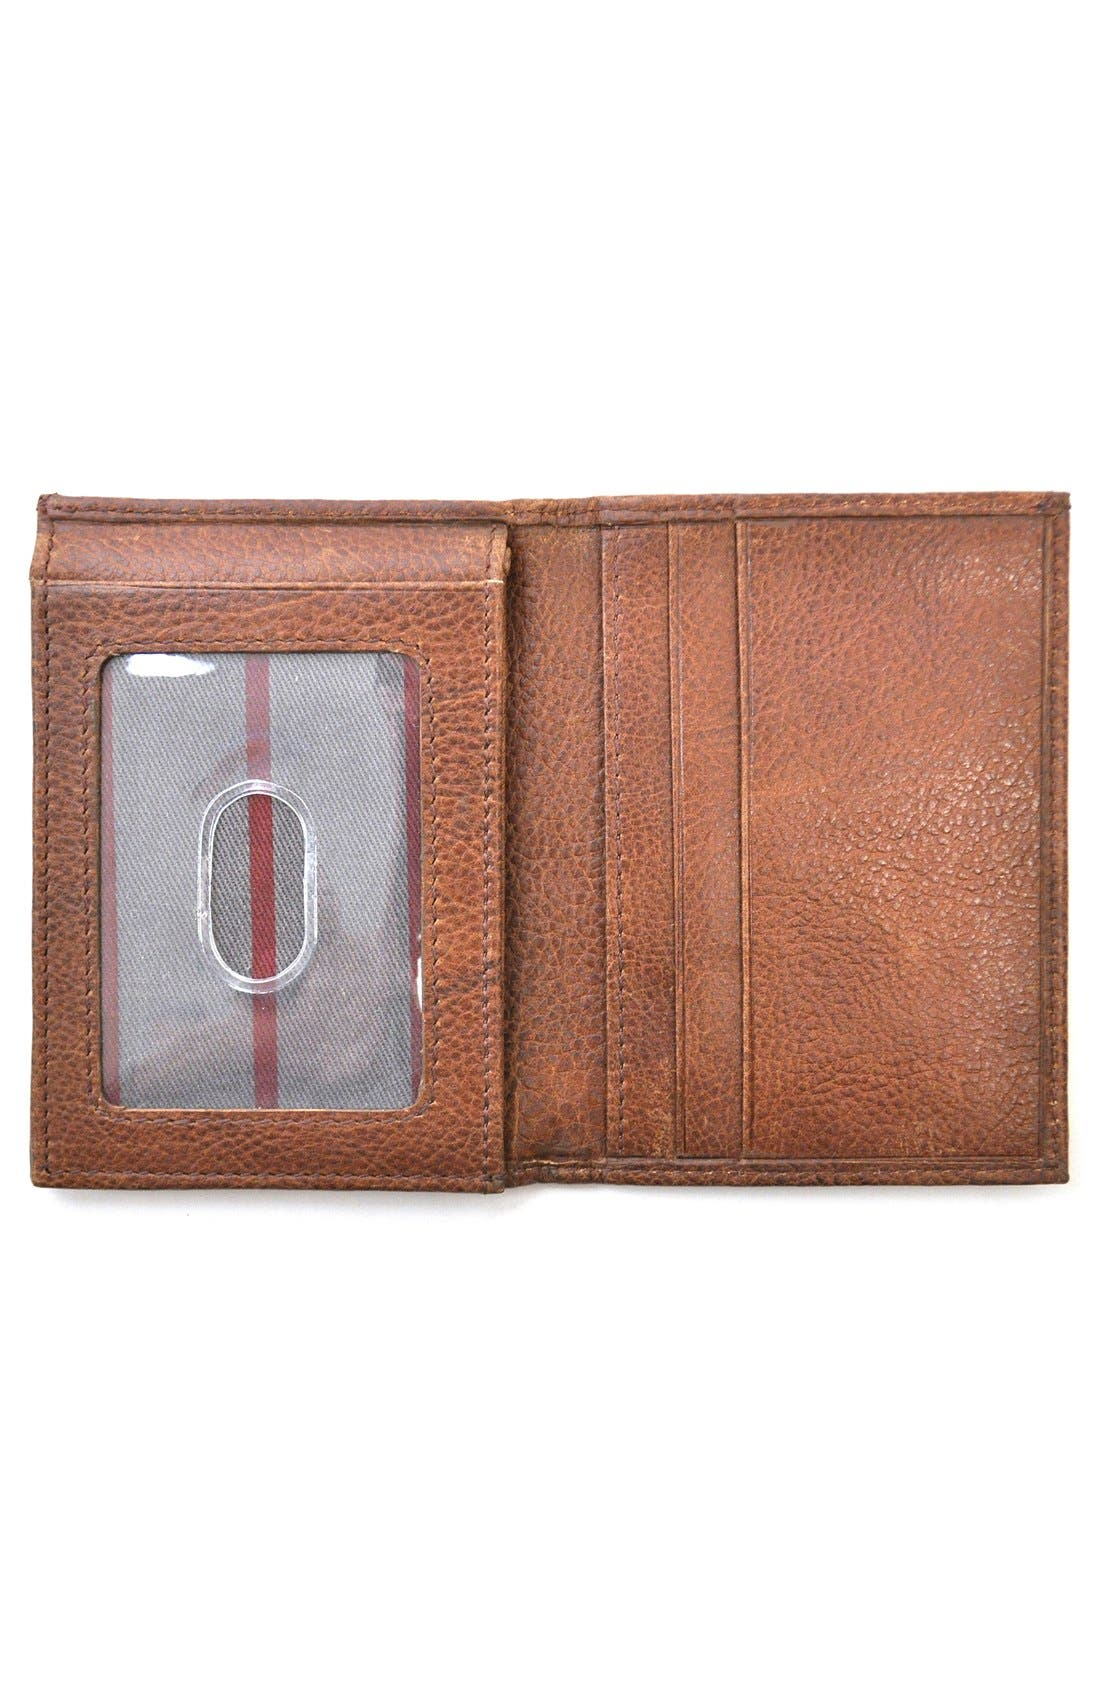 Triple Play Leather L-Fold Wallet,                             Alternate thumbnail 6, color,                             202